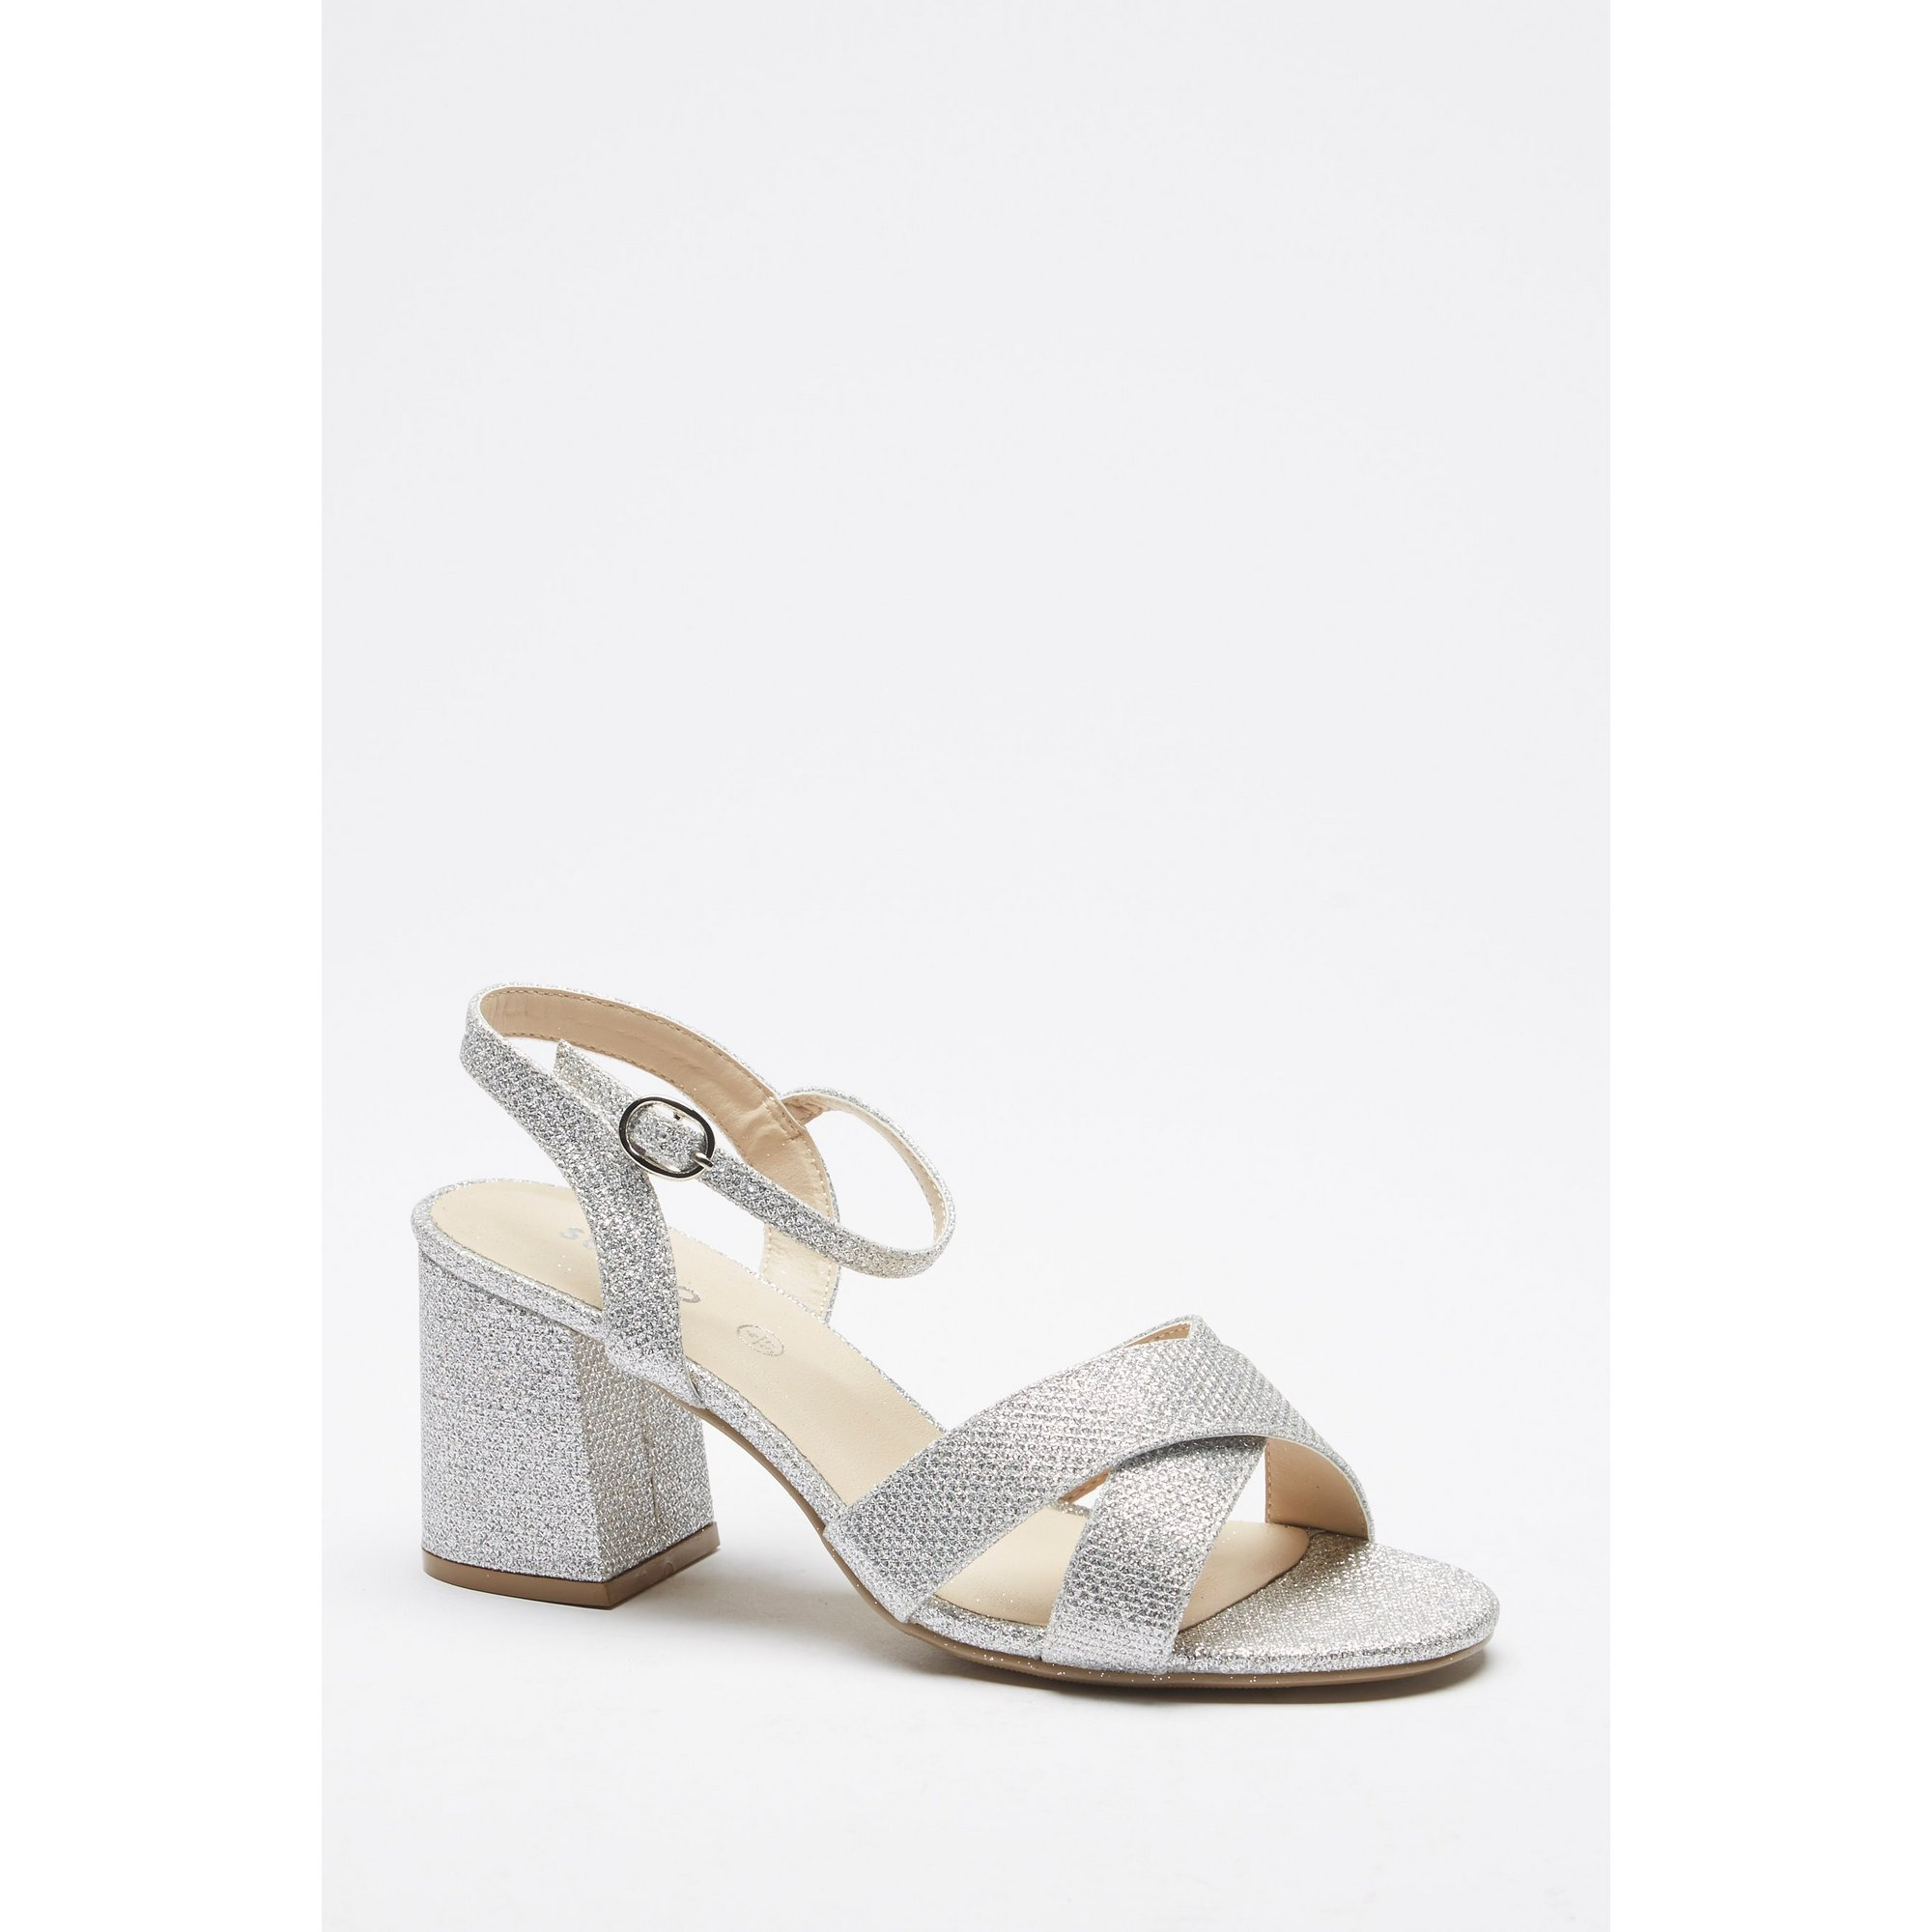 Image of 2 Part Cross Over Heeled Sandals